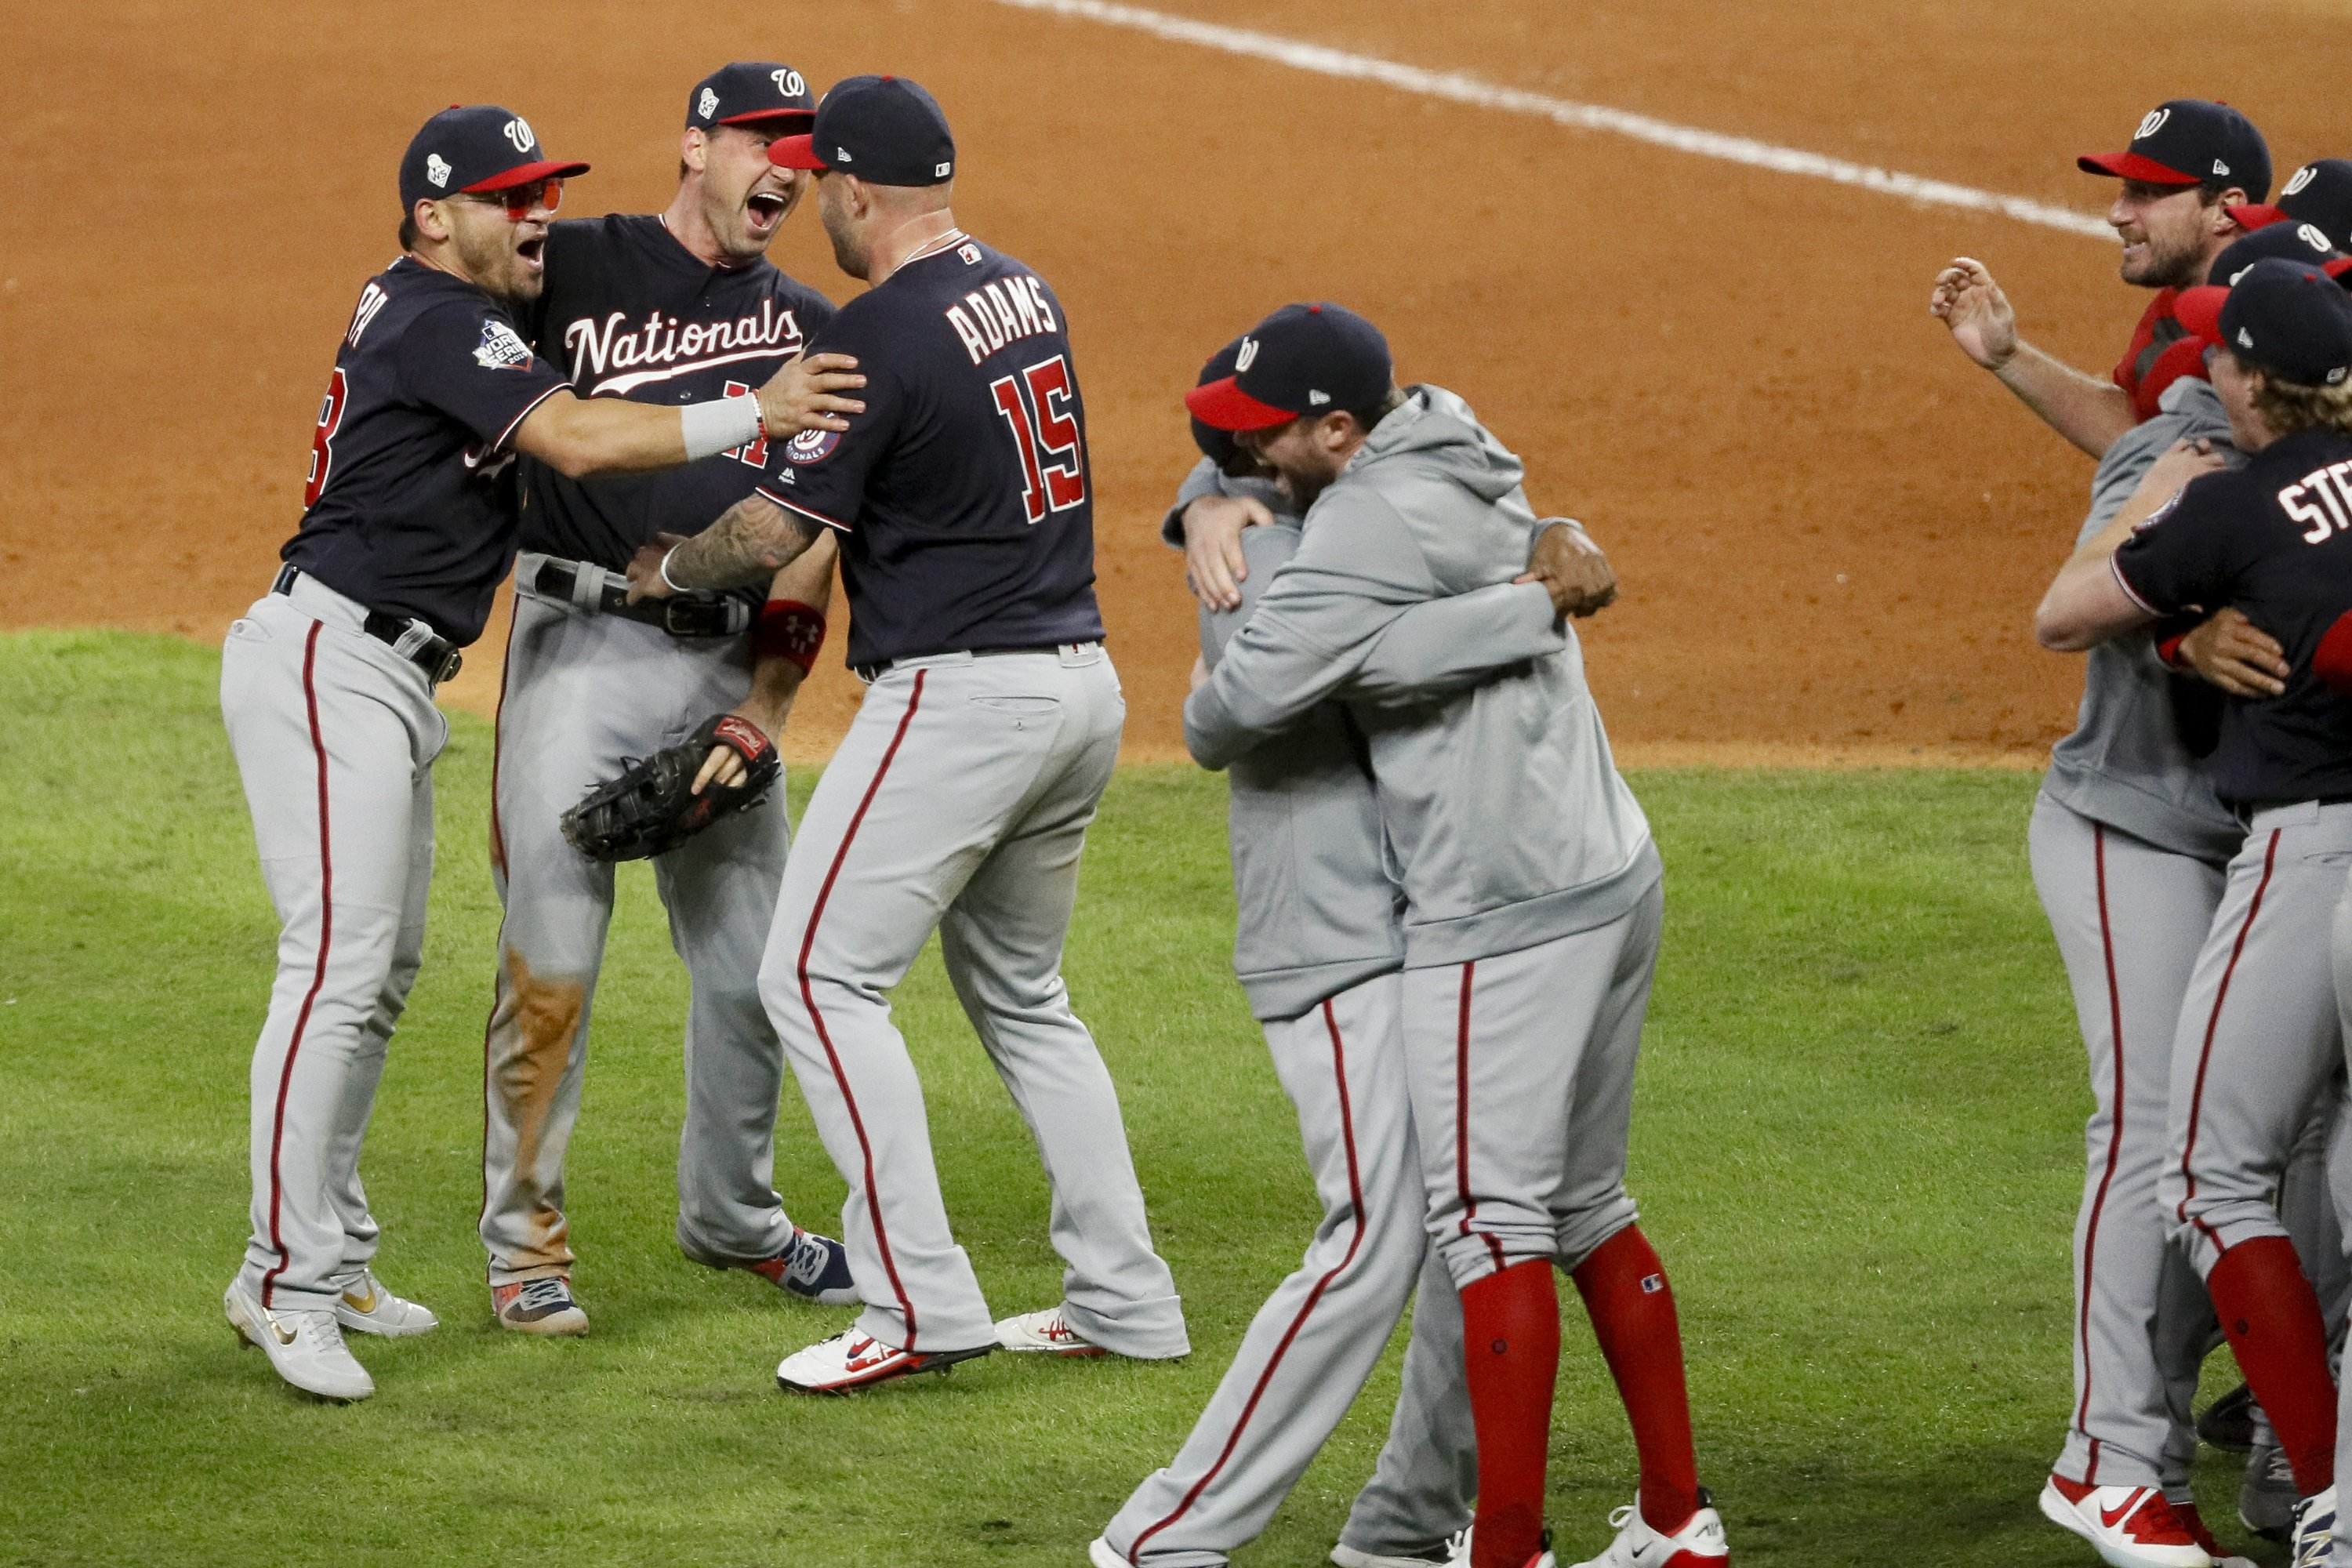 Final comeback as Nationals win World Series title